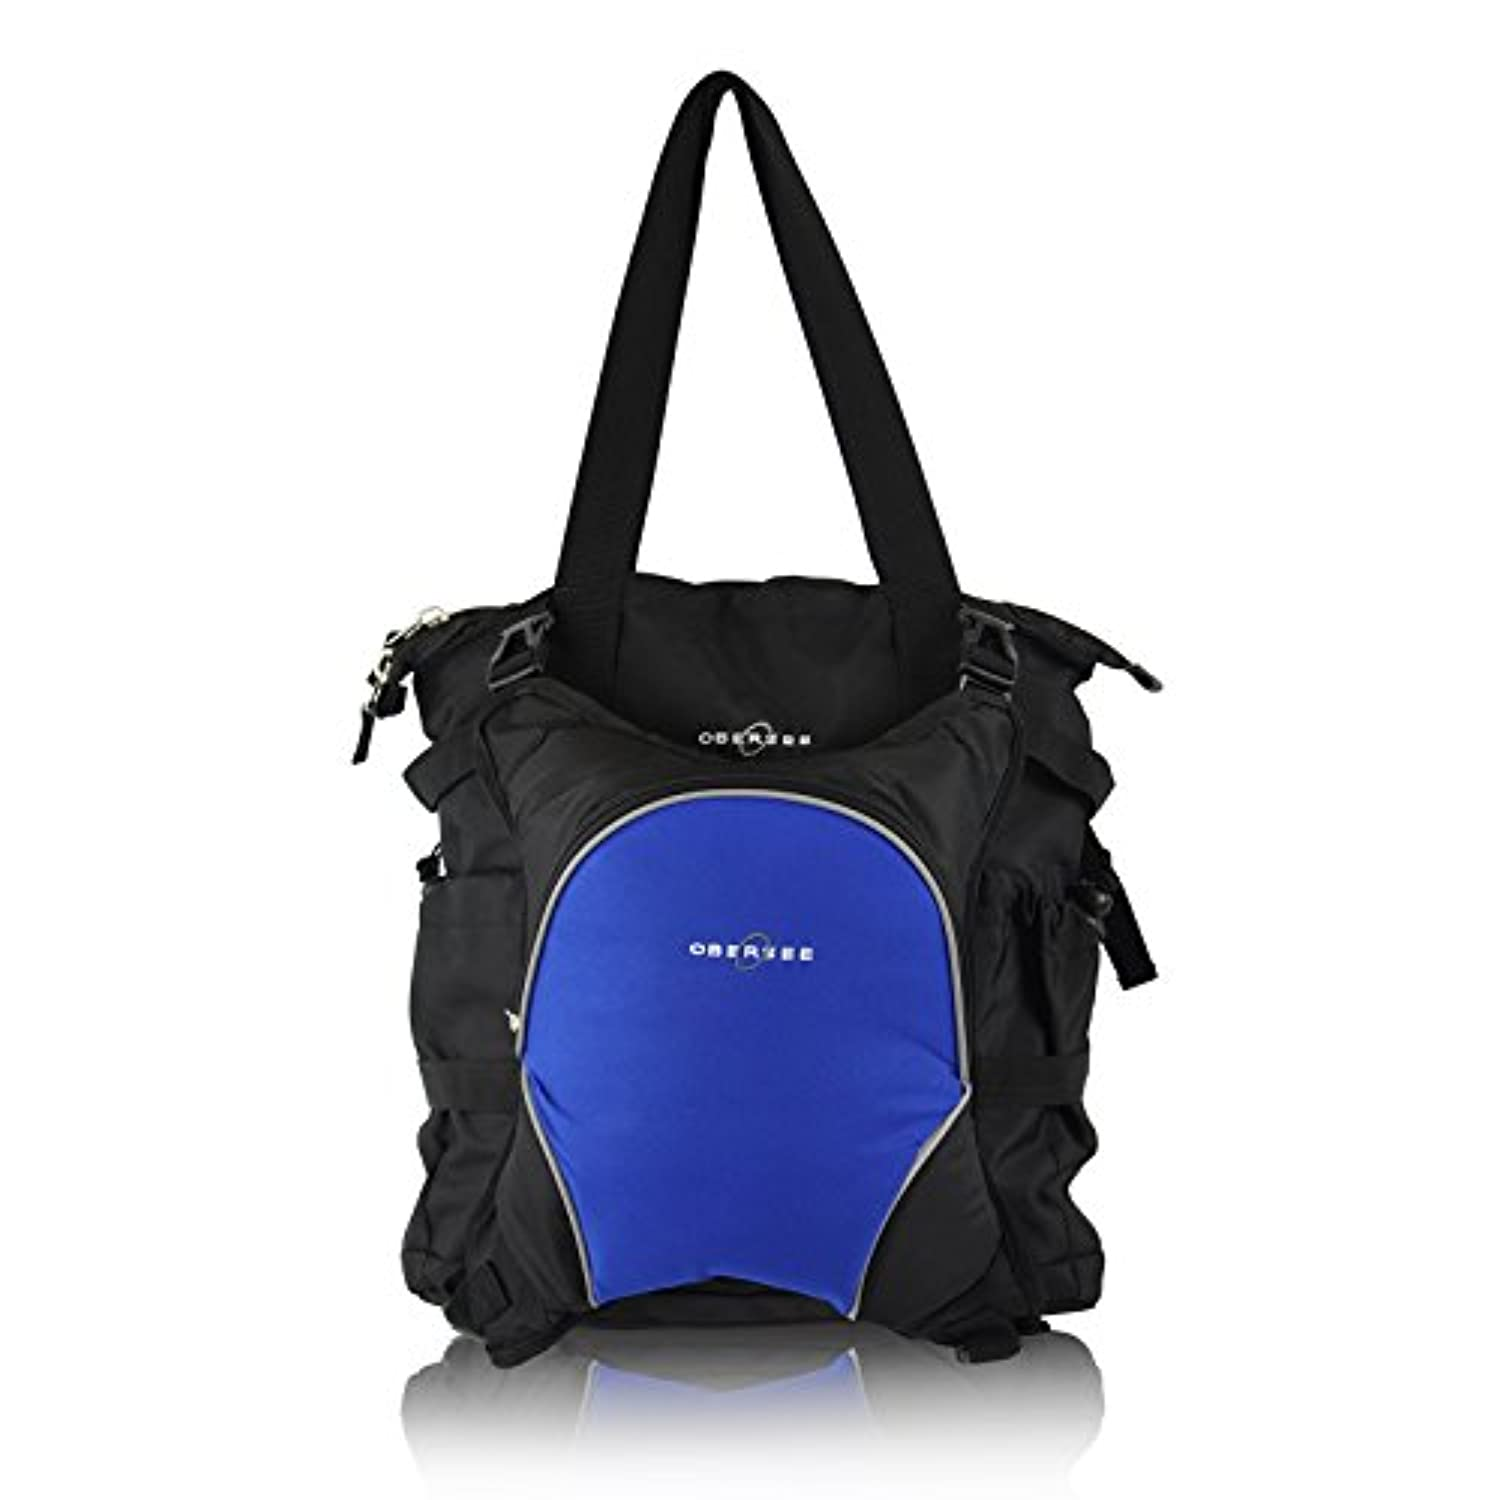 Obersee Innsbruck Diaper Bag Tote with Cooler, Black/Royal Blue by Obersee